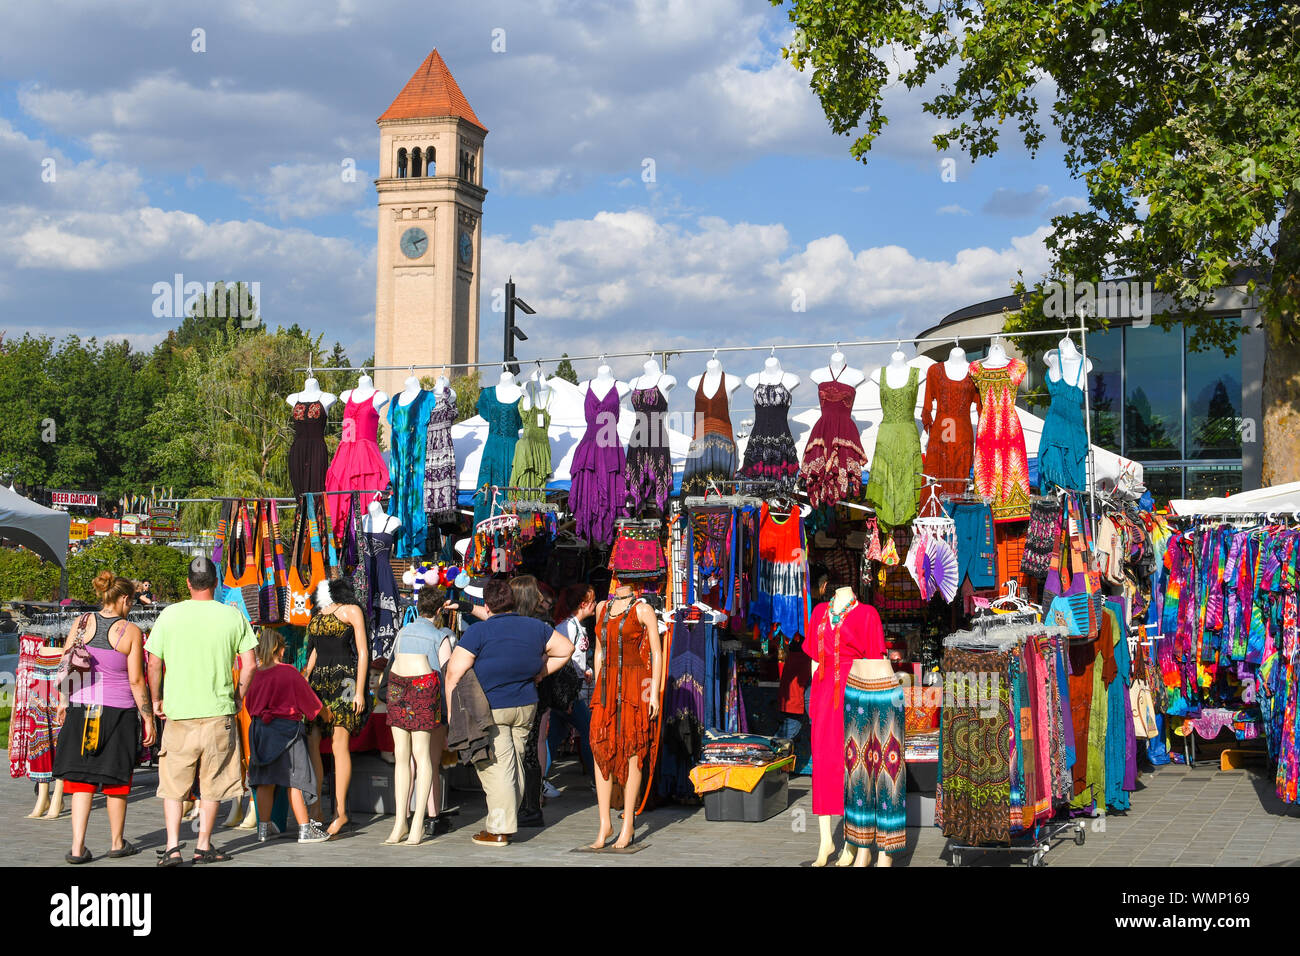 Visitors to the annual Pig Out in the Park stop at an outdoor vendor booth selling colorful dresses and clothing in Spokane Washington Stock Photo